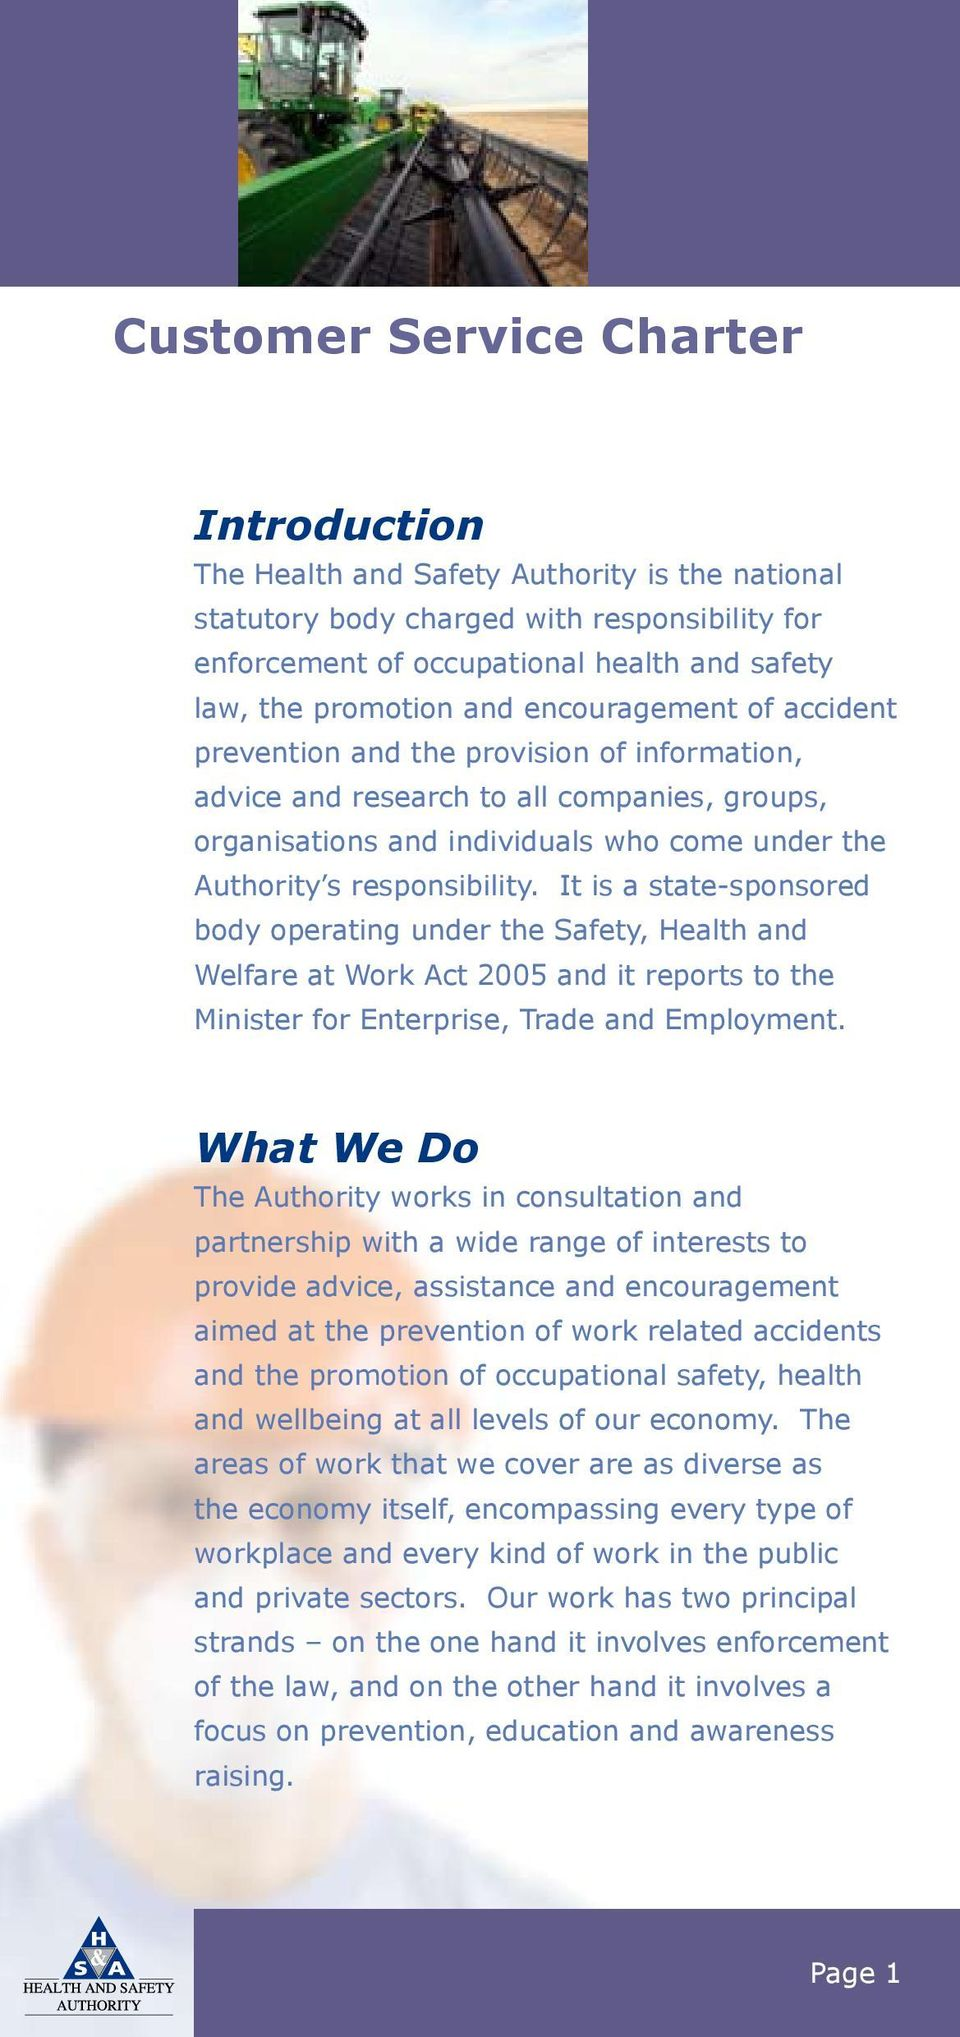 It is a state-sponsored body operating under the Safety, Health and Welfare at Work Act 2005 and it reports to the Minister for Enterprise, Trade and Employment.